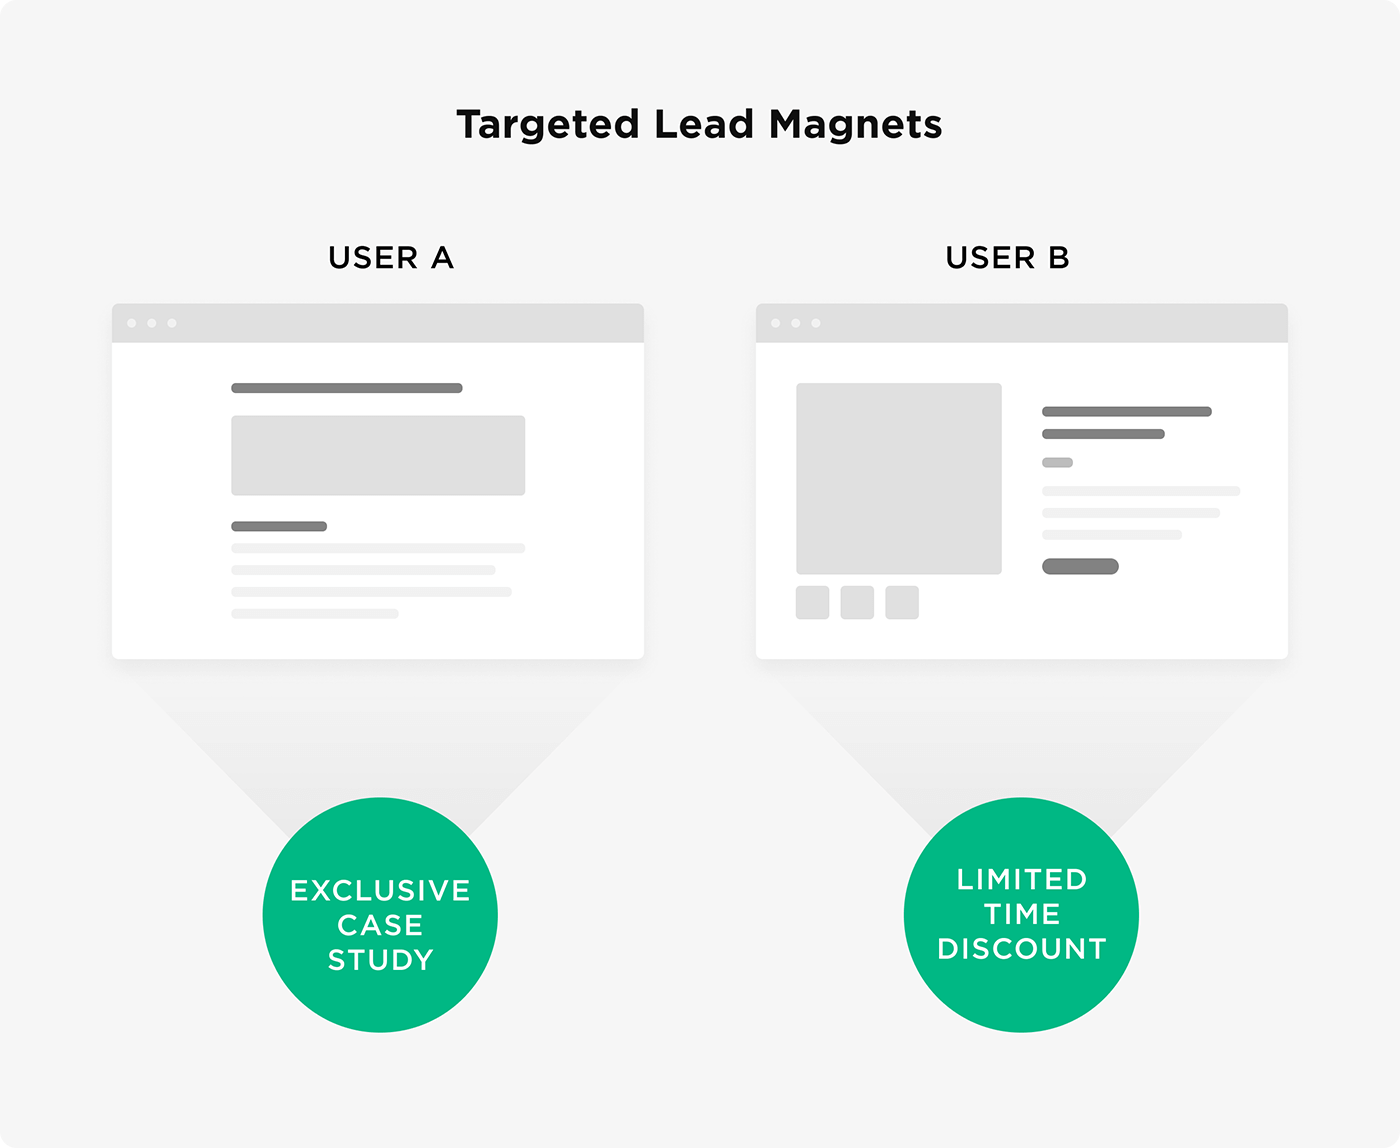 Targeted lead magnets